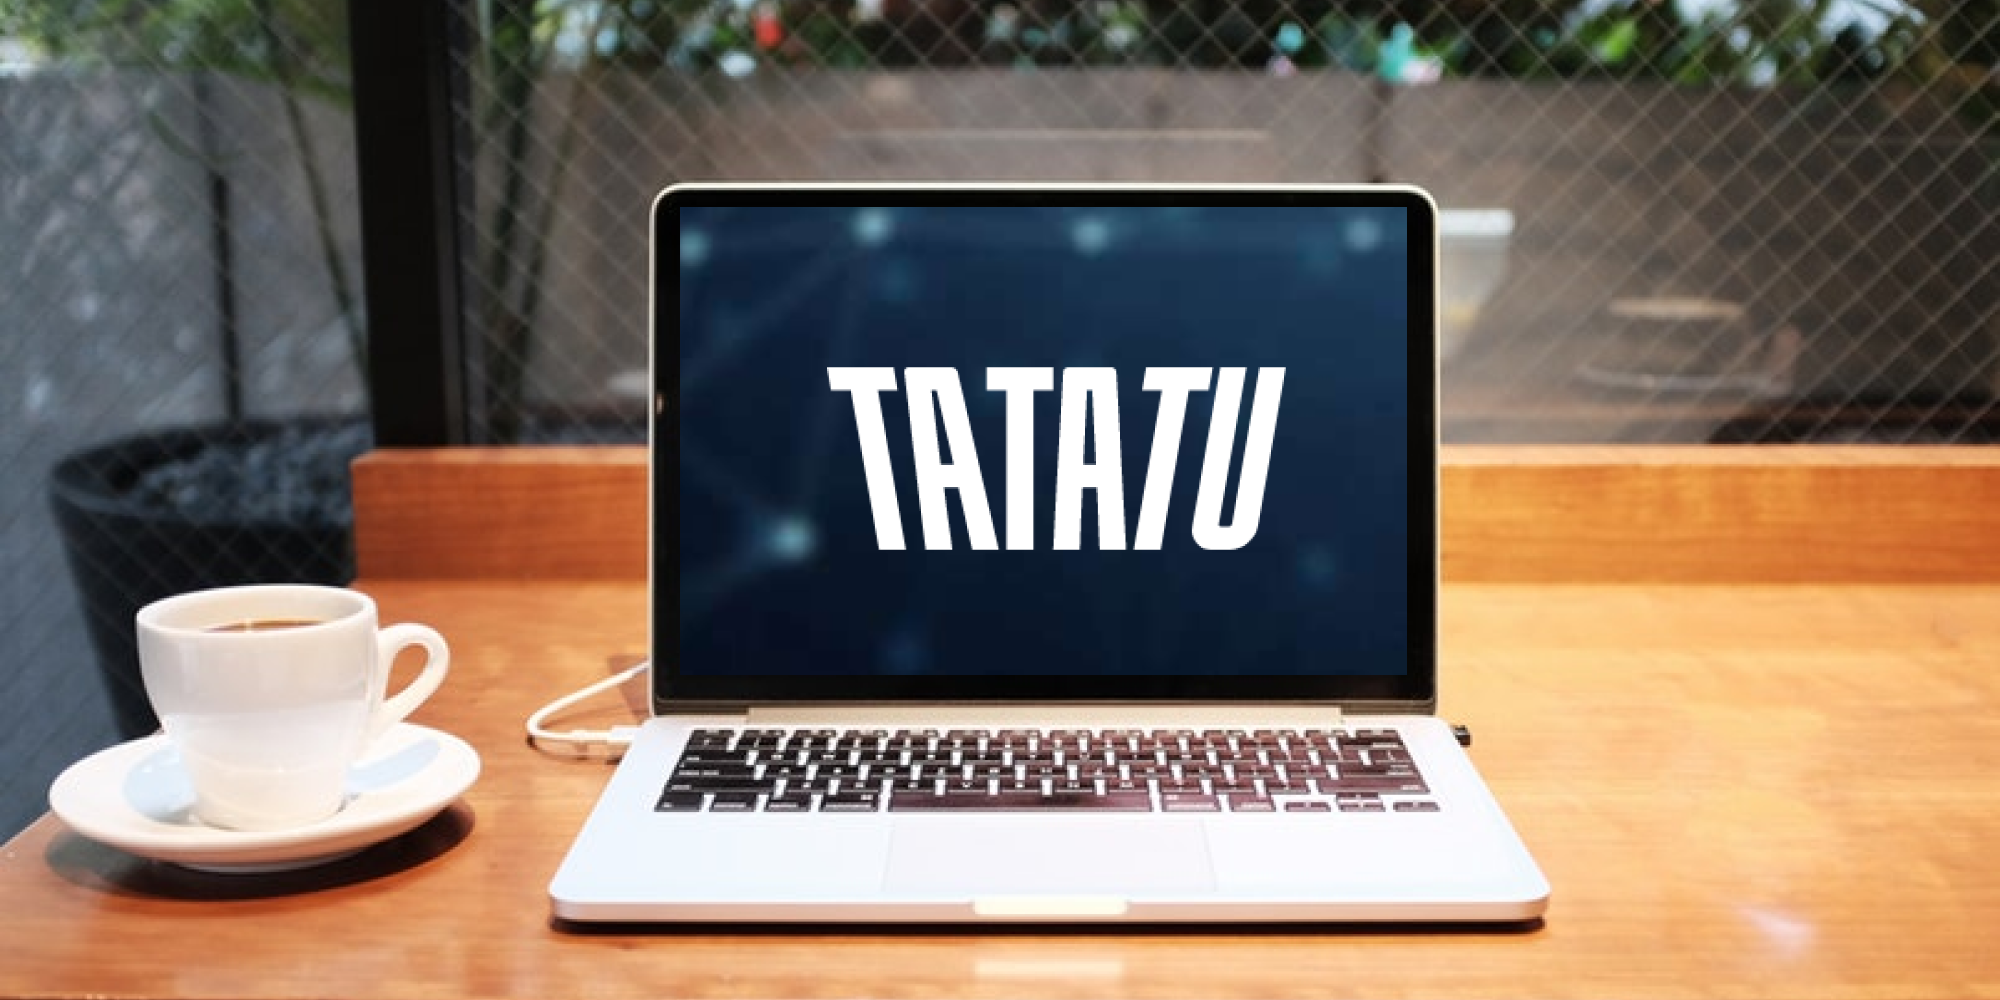 TaTaTu Hosts the World's Third-Largest ICO, Earns Over $500 Million